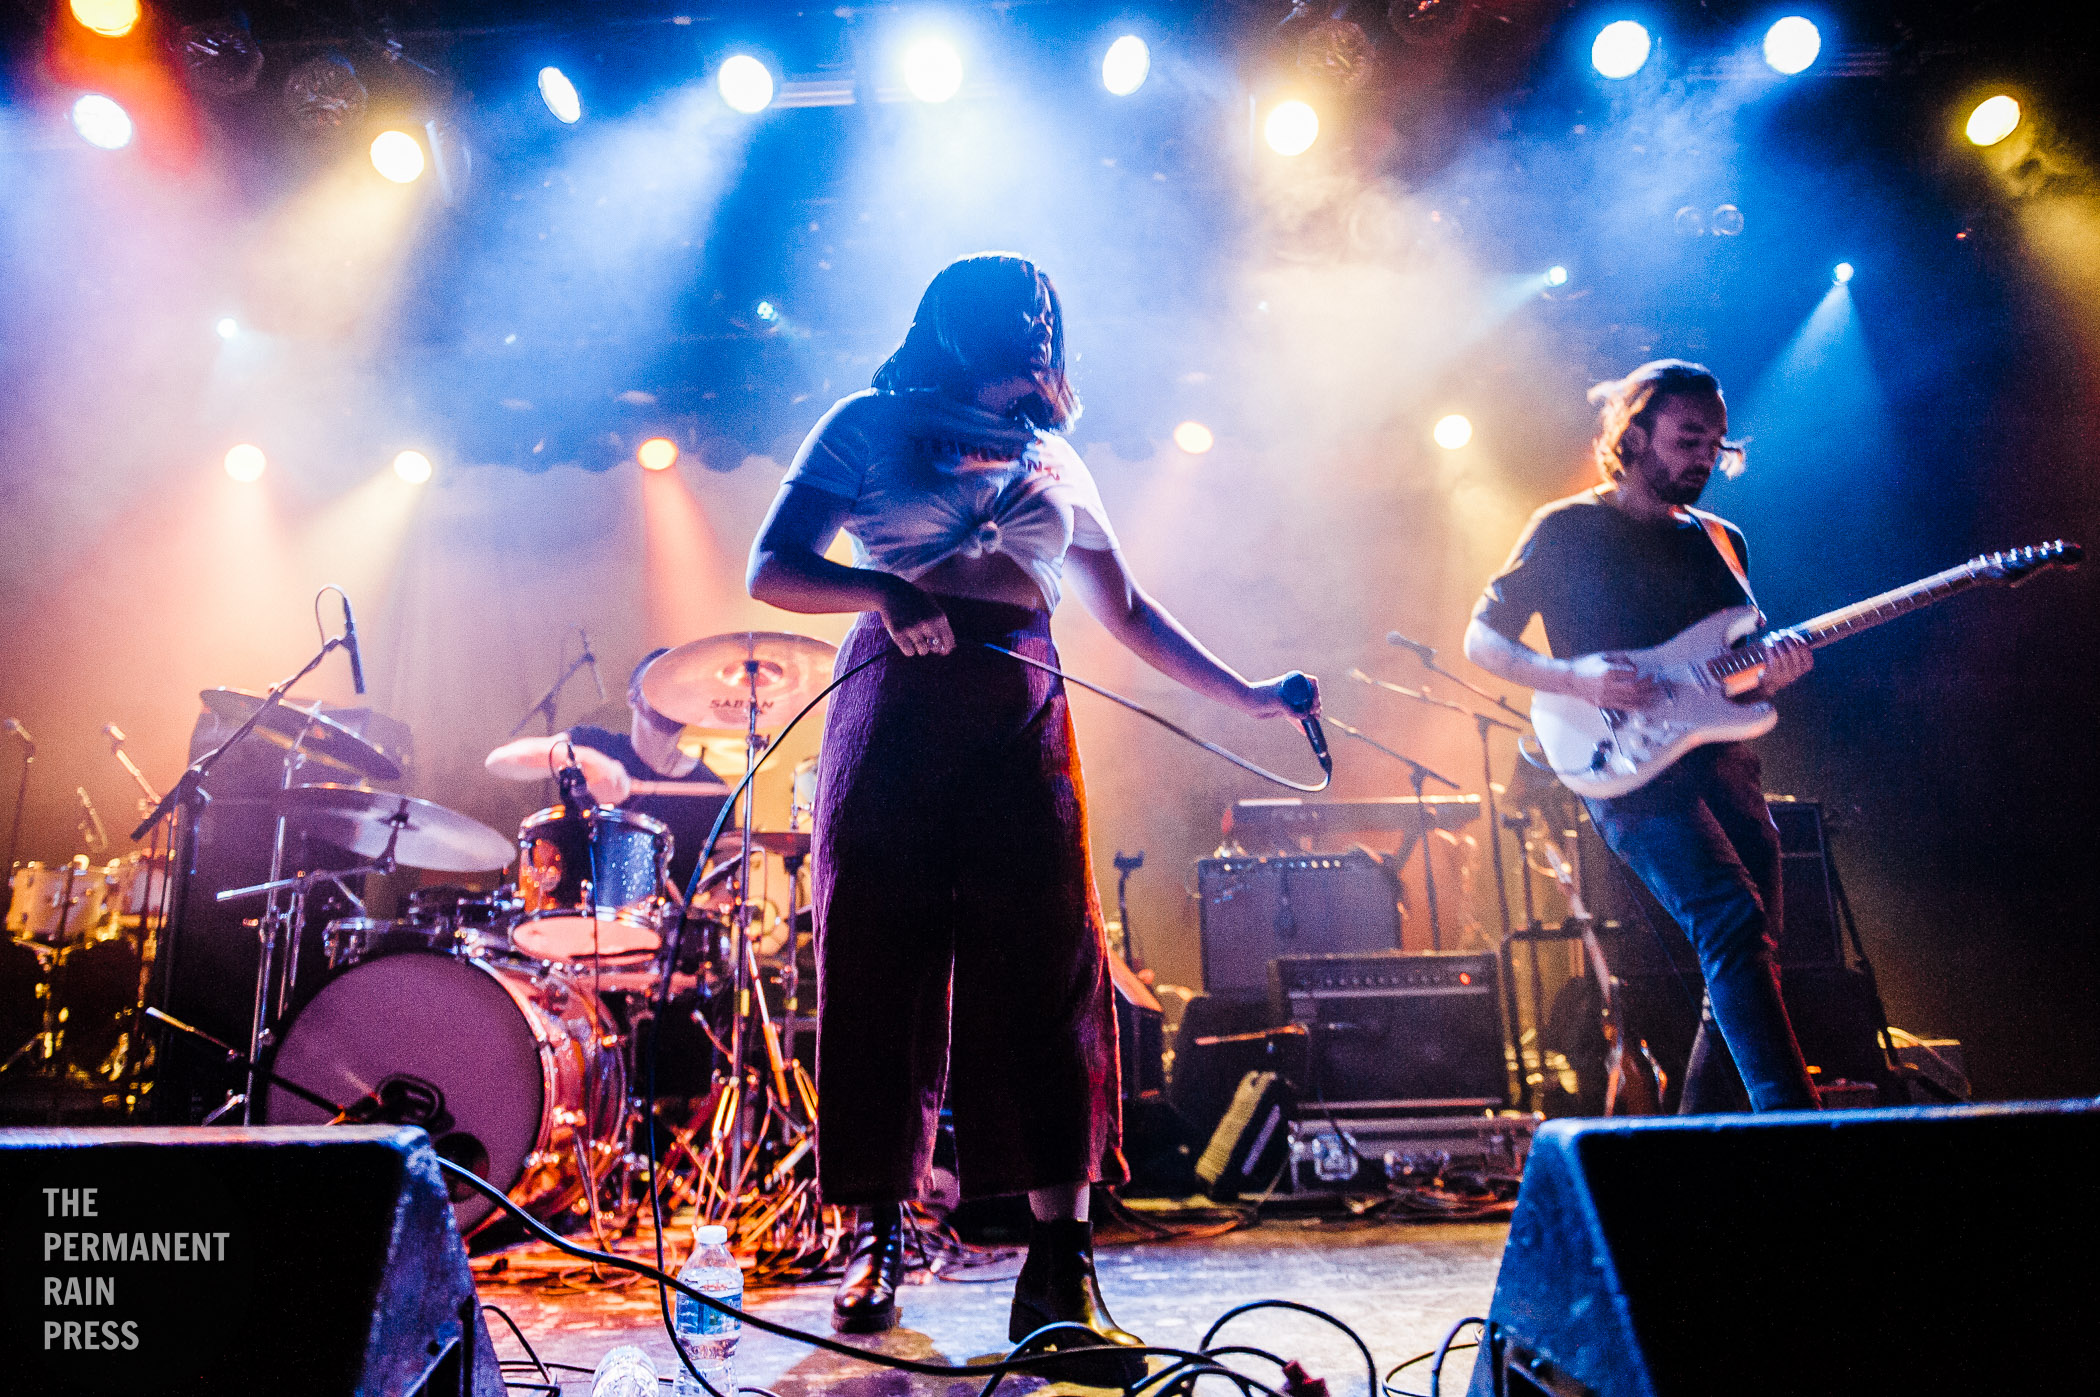 2_The_Belle_Game-Commodore_Ballroom-Timothy_Nguyen-20171020 (4 of 14).jpg